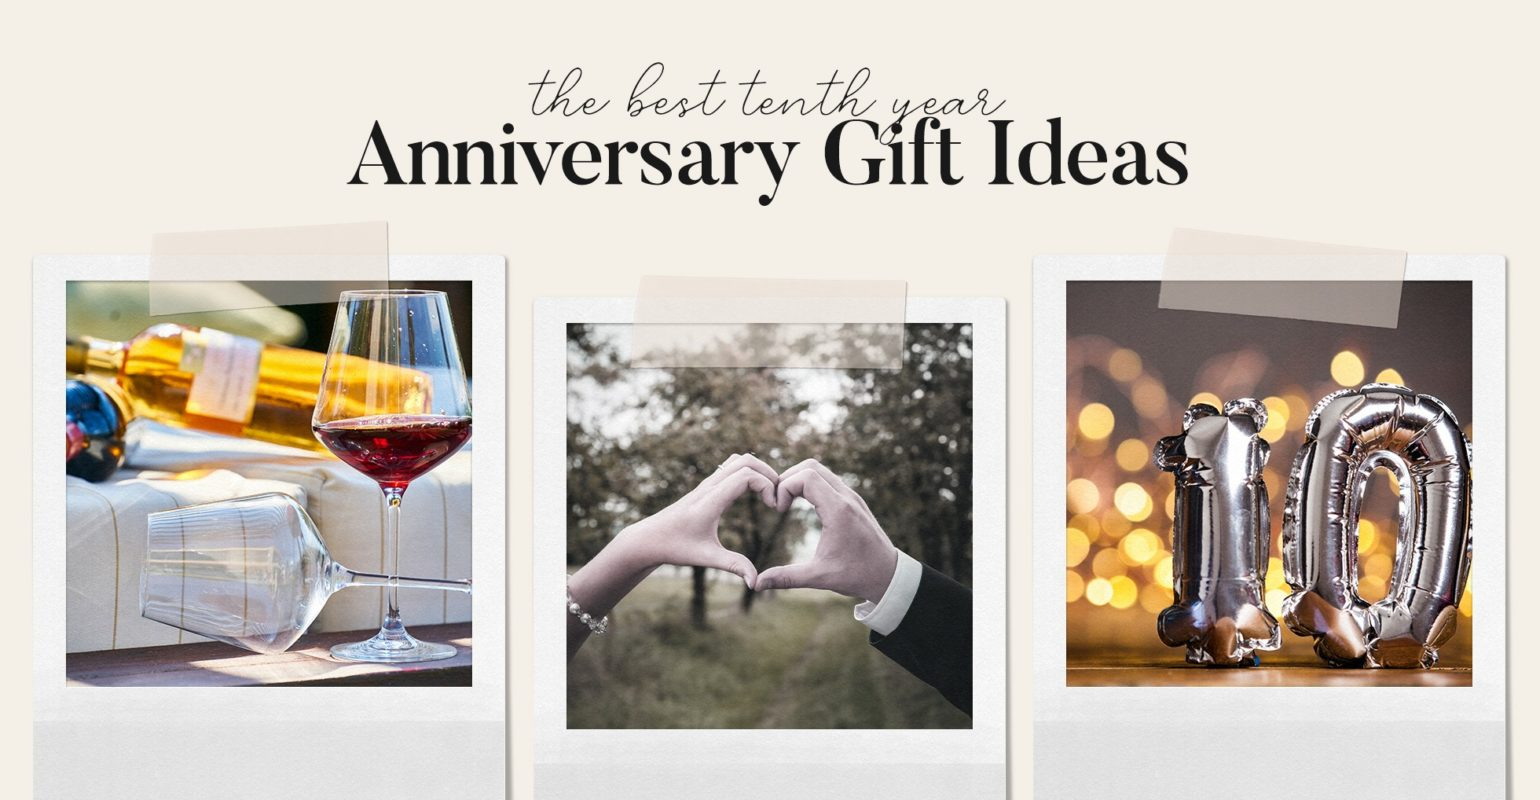 Best 10 Year Anniversary Gift Ideas 2020 Guide Giving Assistant